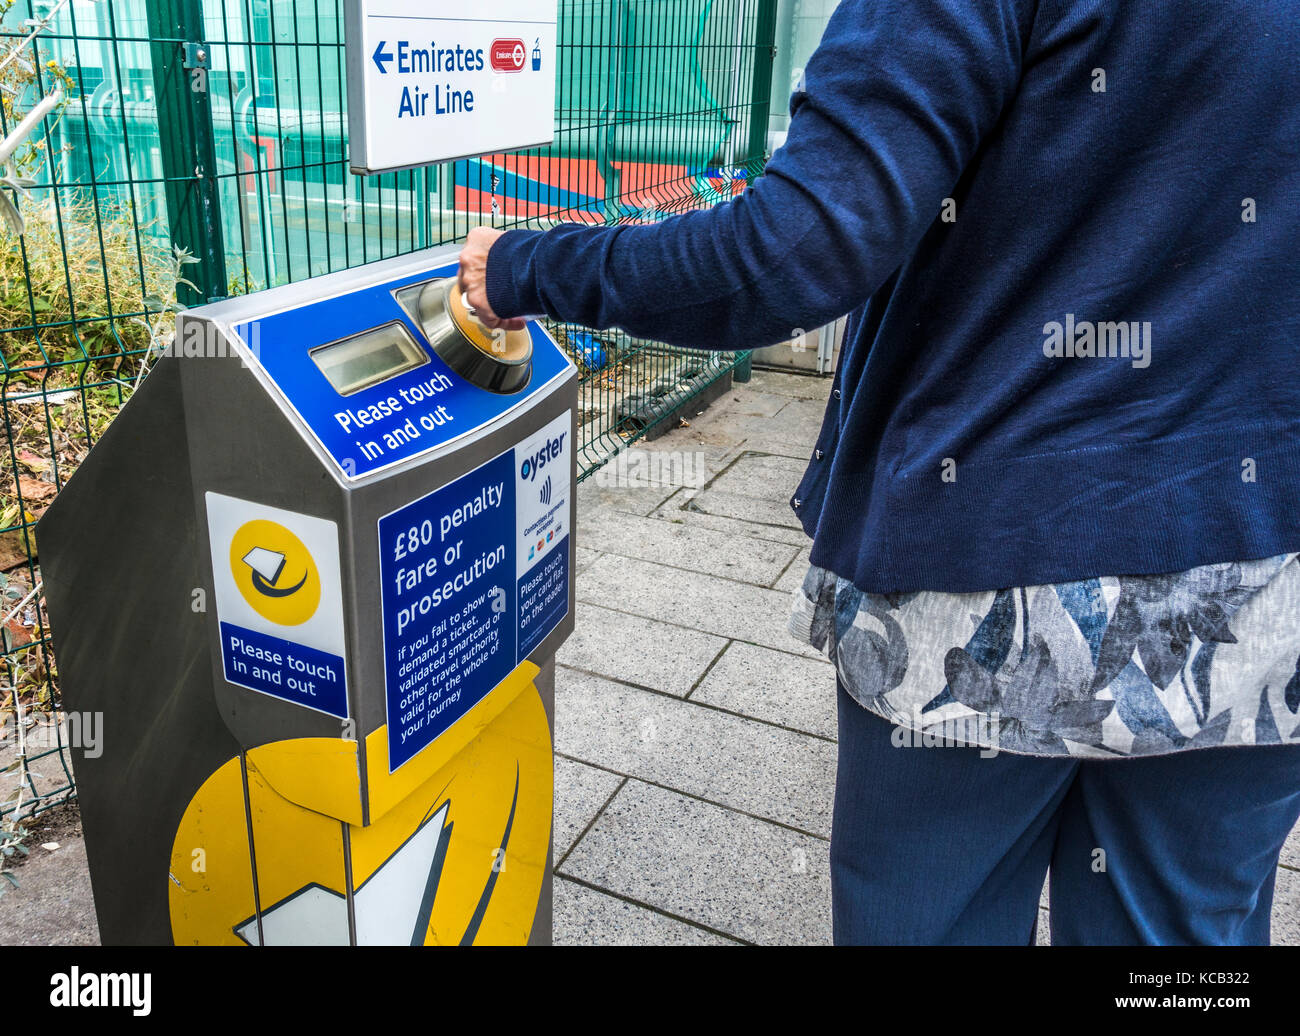 A woman commuter tapping her bank card on a contactless payment machine for the Docklands Light Railway (DLR) in - Stock Image